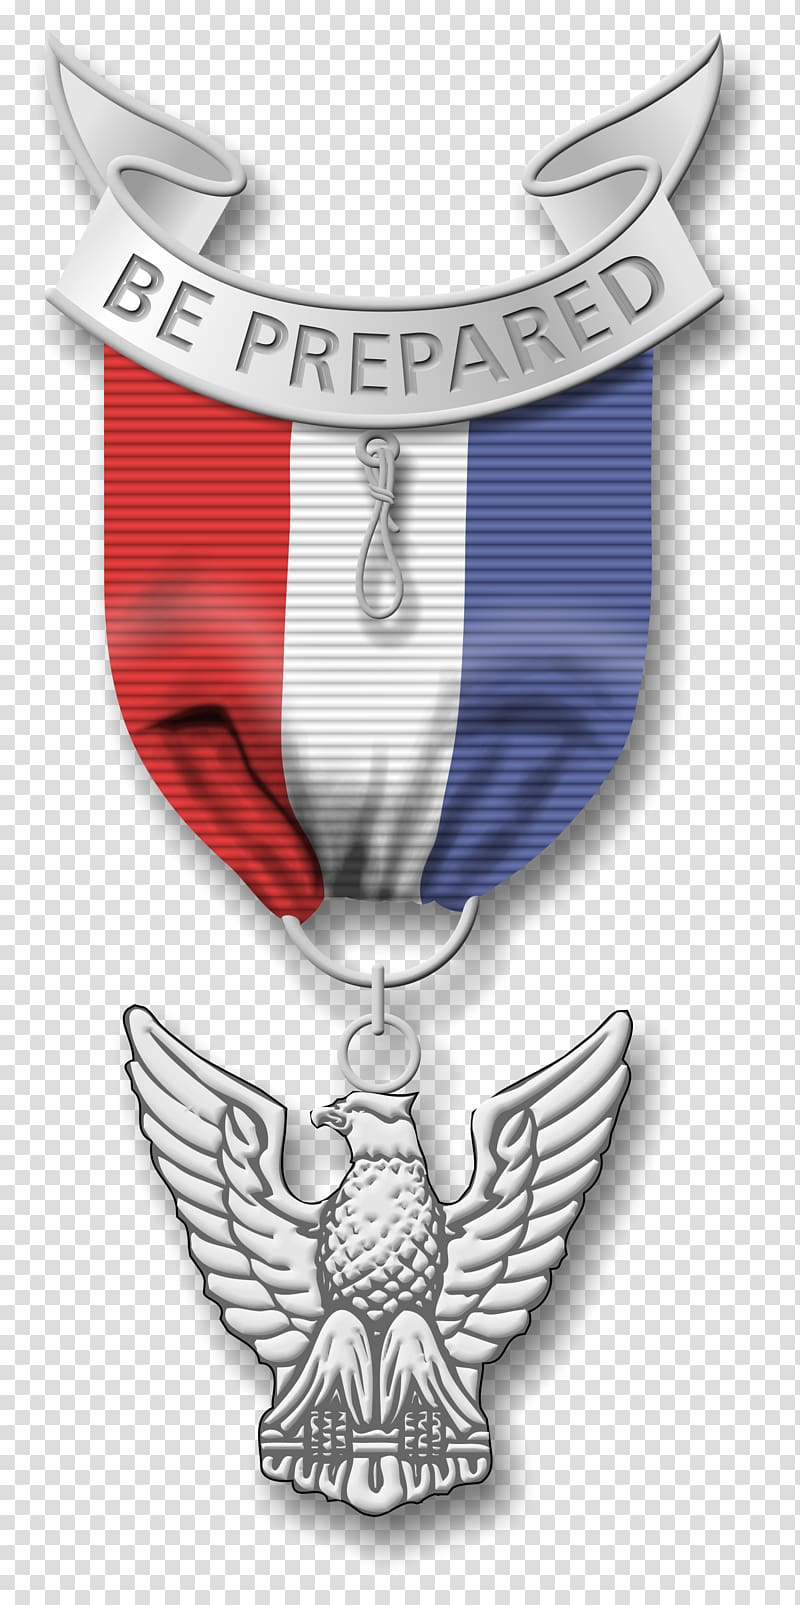 Blue, white, and red be prepared medal, Eagle Scout Boy.